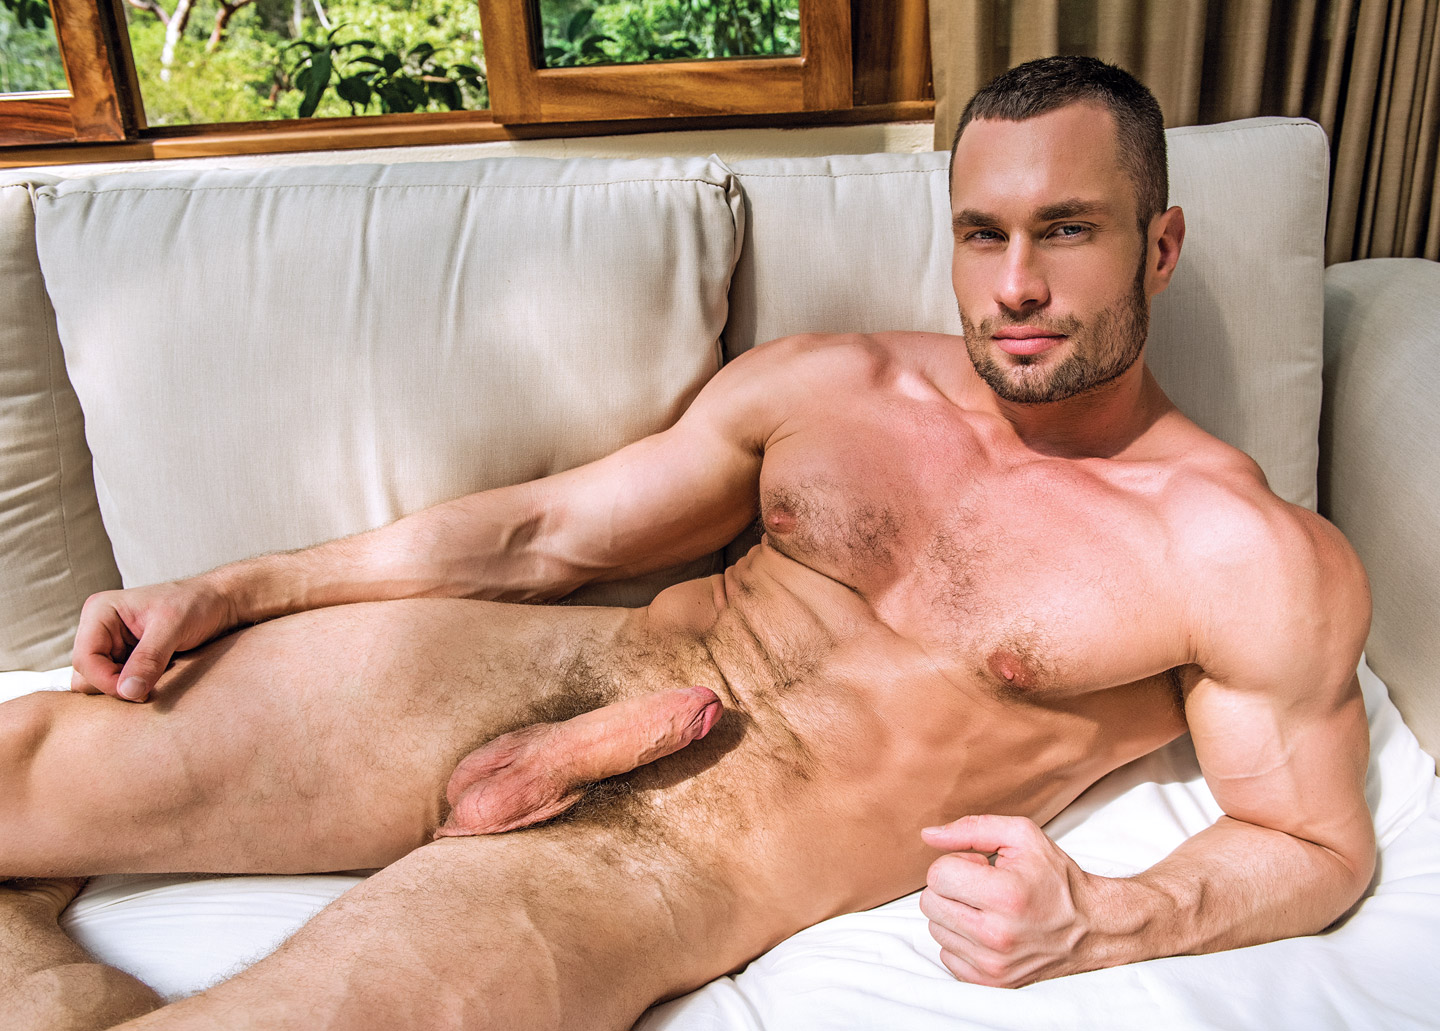 Nude gay pictures